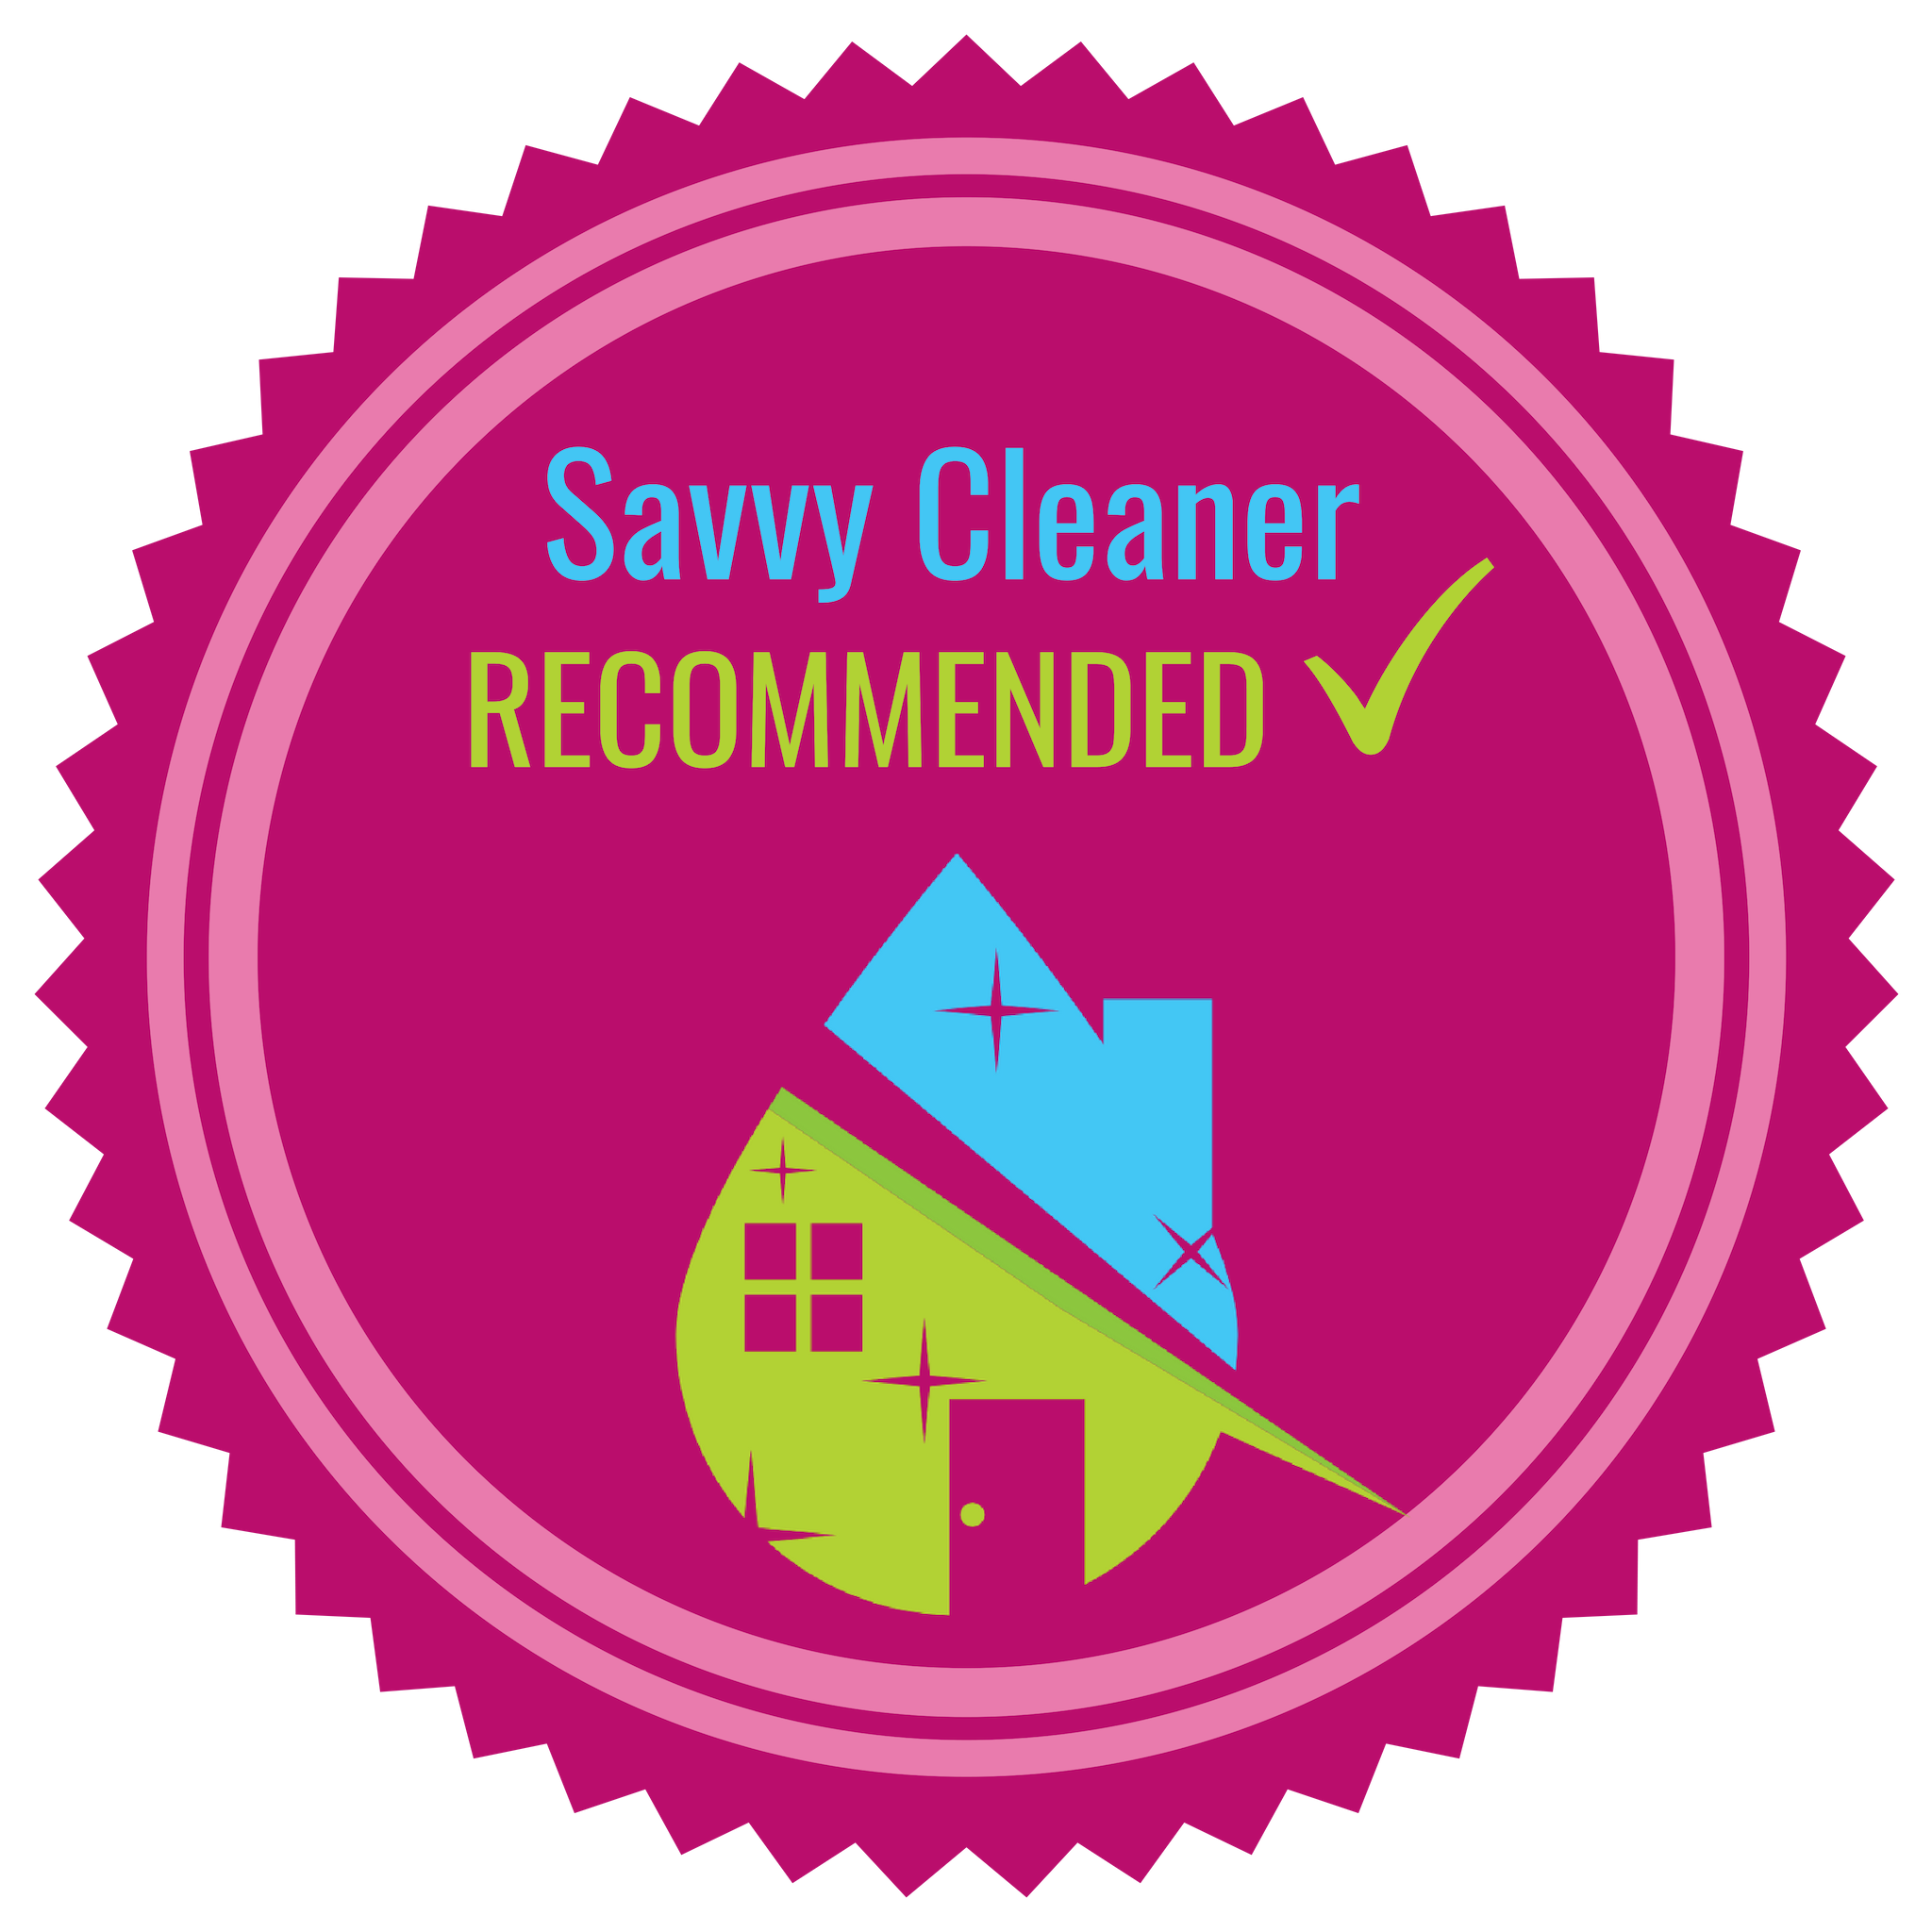 Savvy Cleaner Recommended